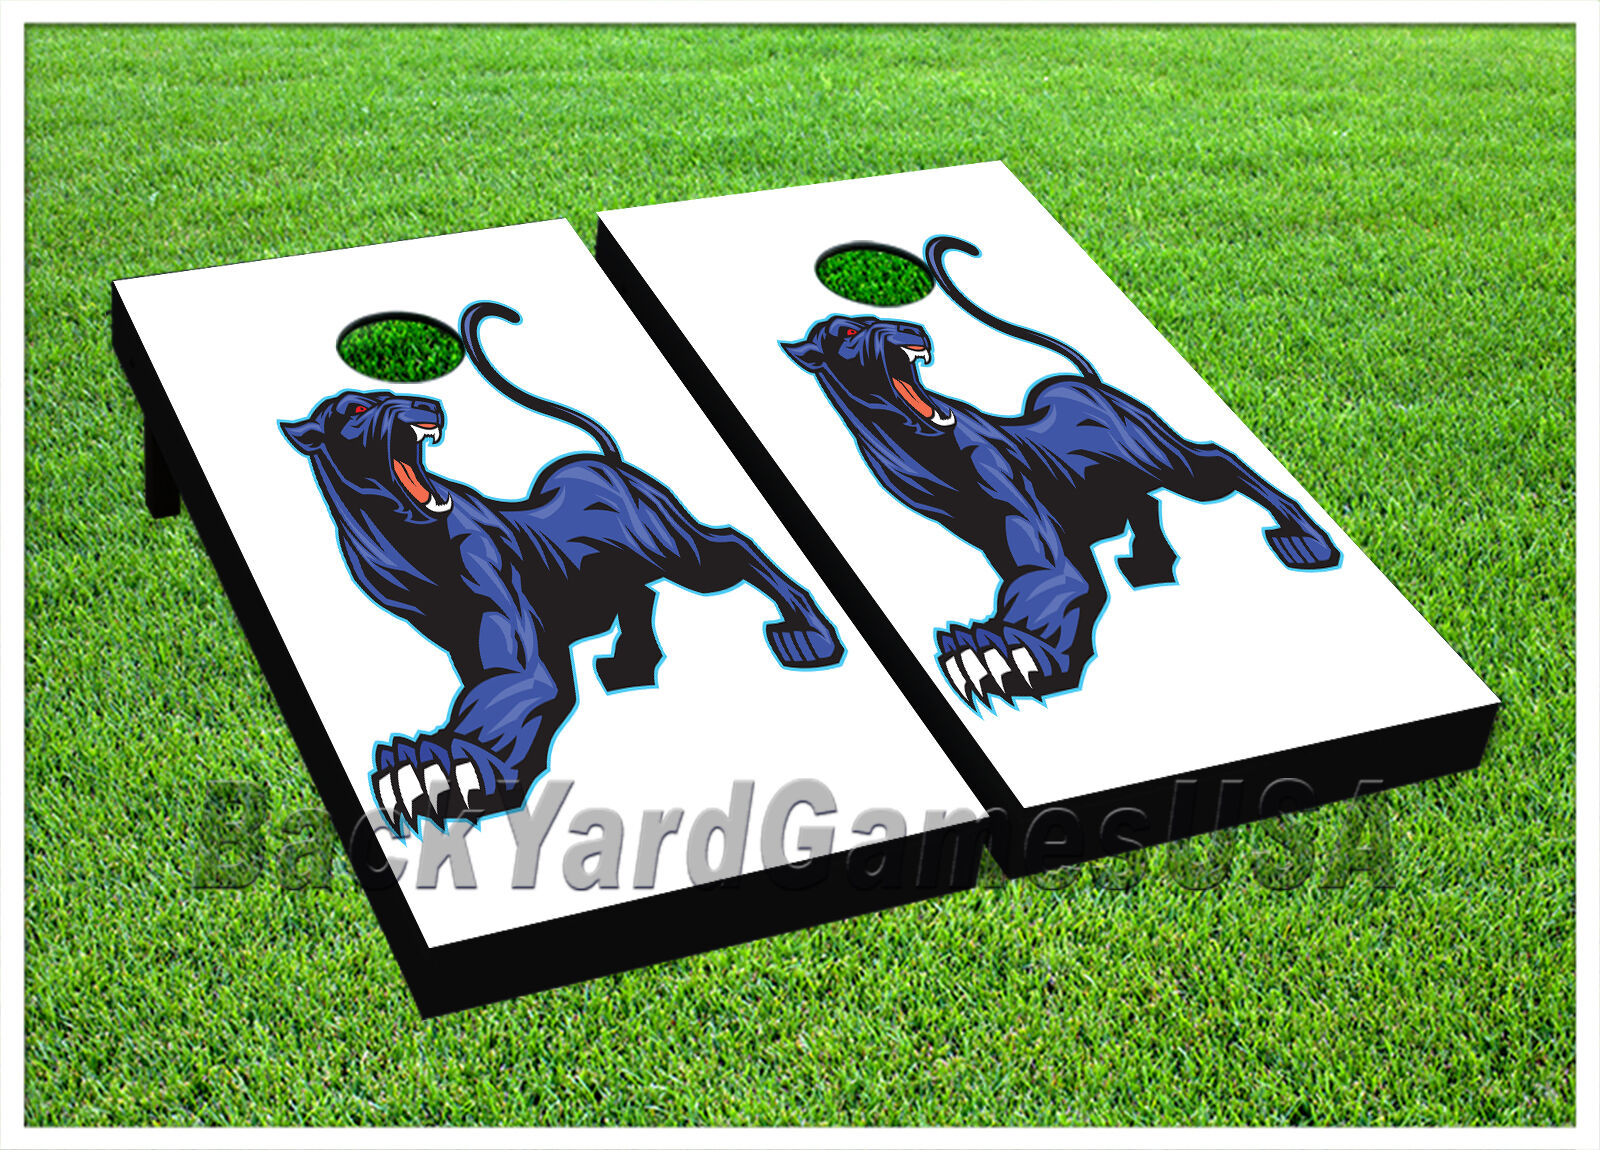 CORNHOLE BEANBAG TOSS GAME w Bags Game Boards Panther bluee  White Cat Set 942  fast shipping worldwide